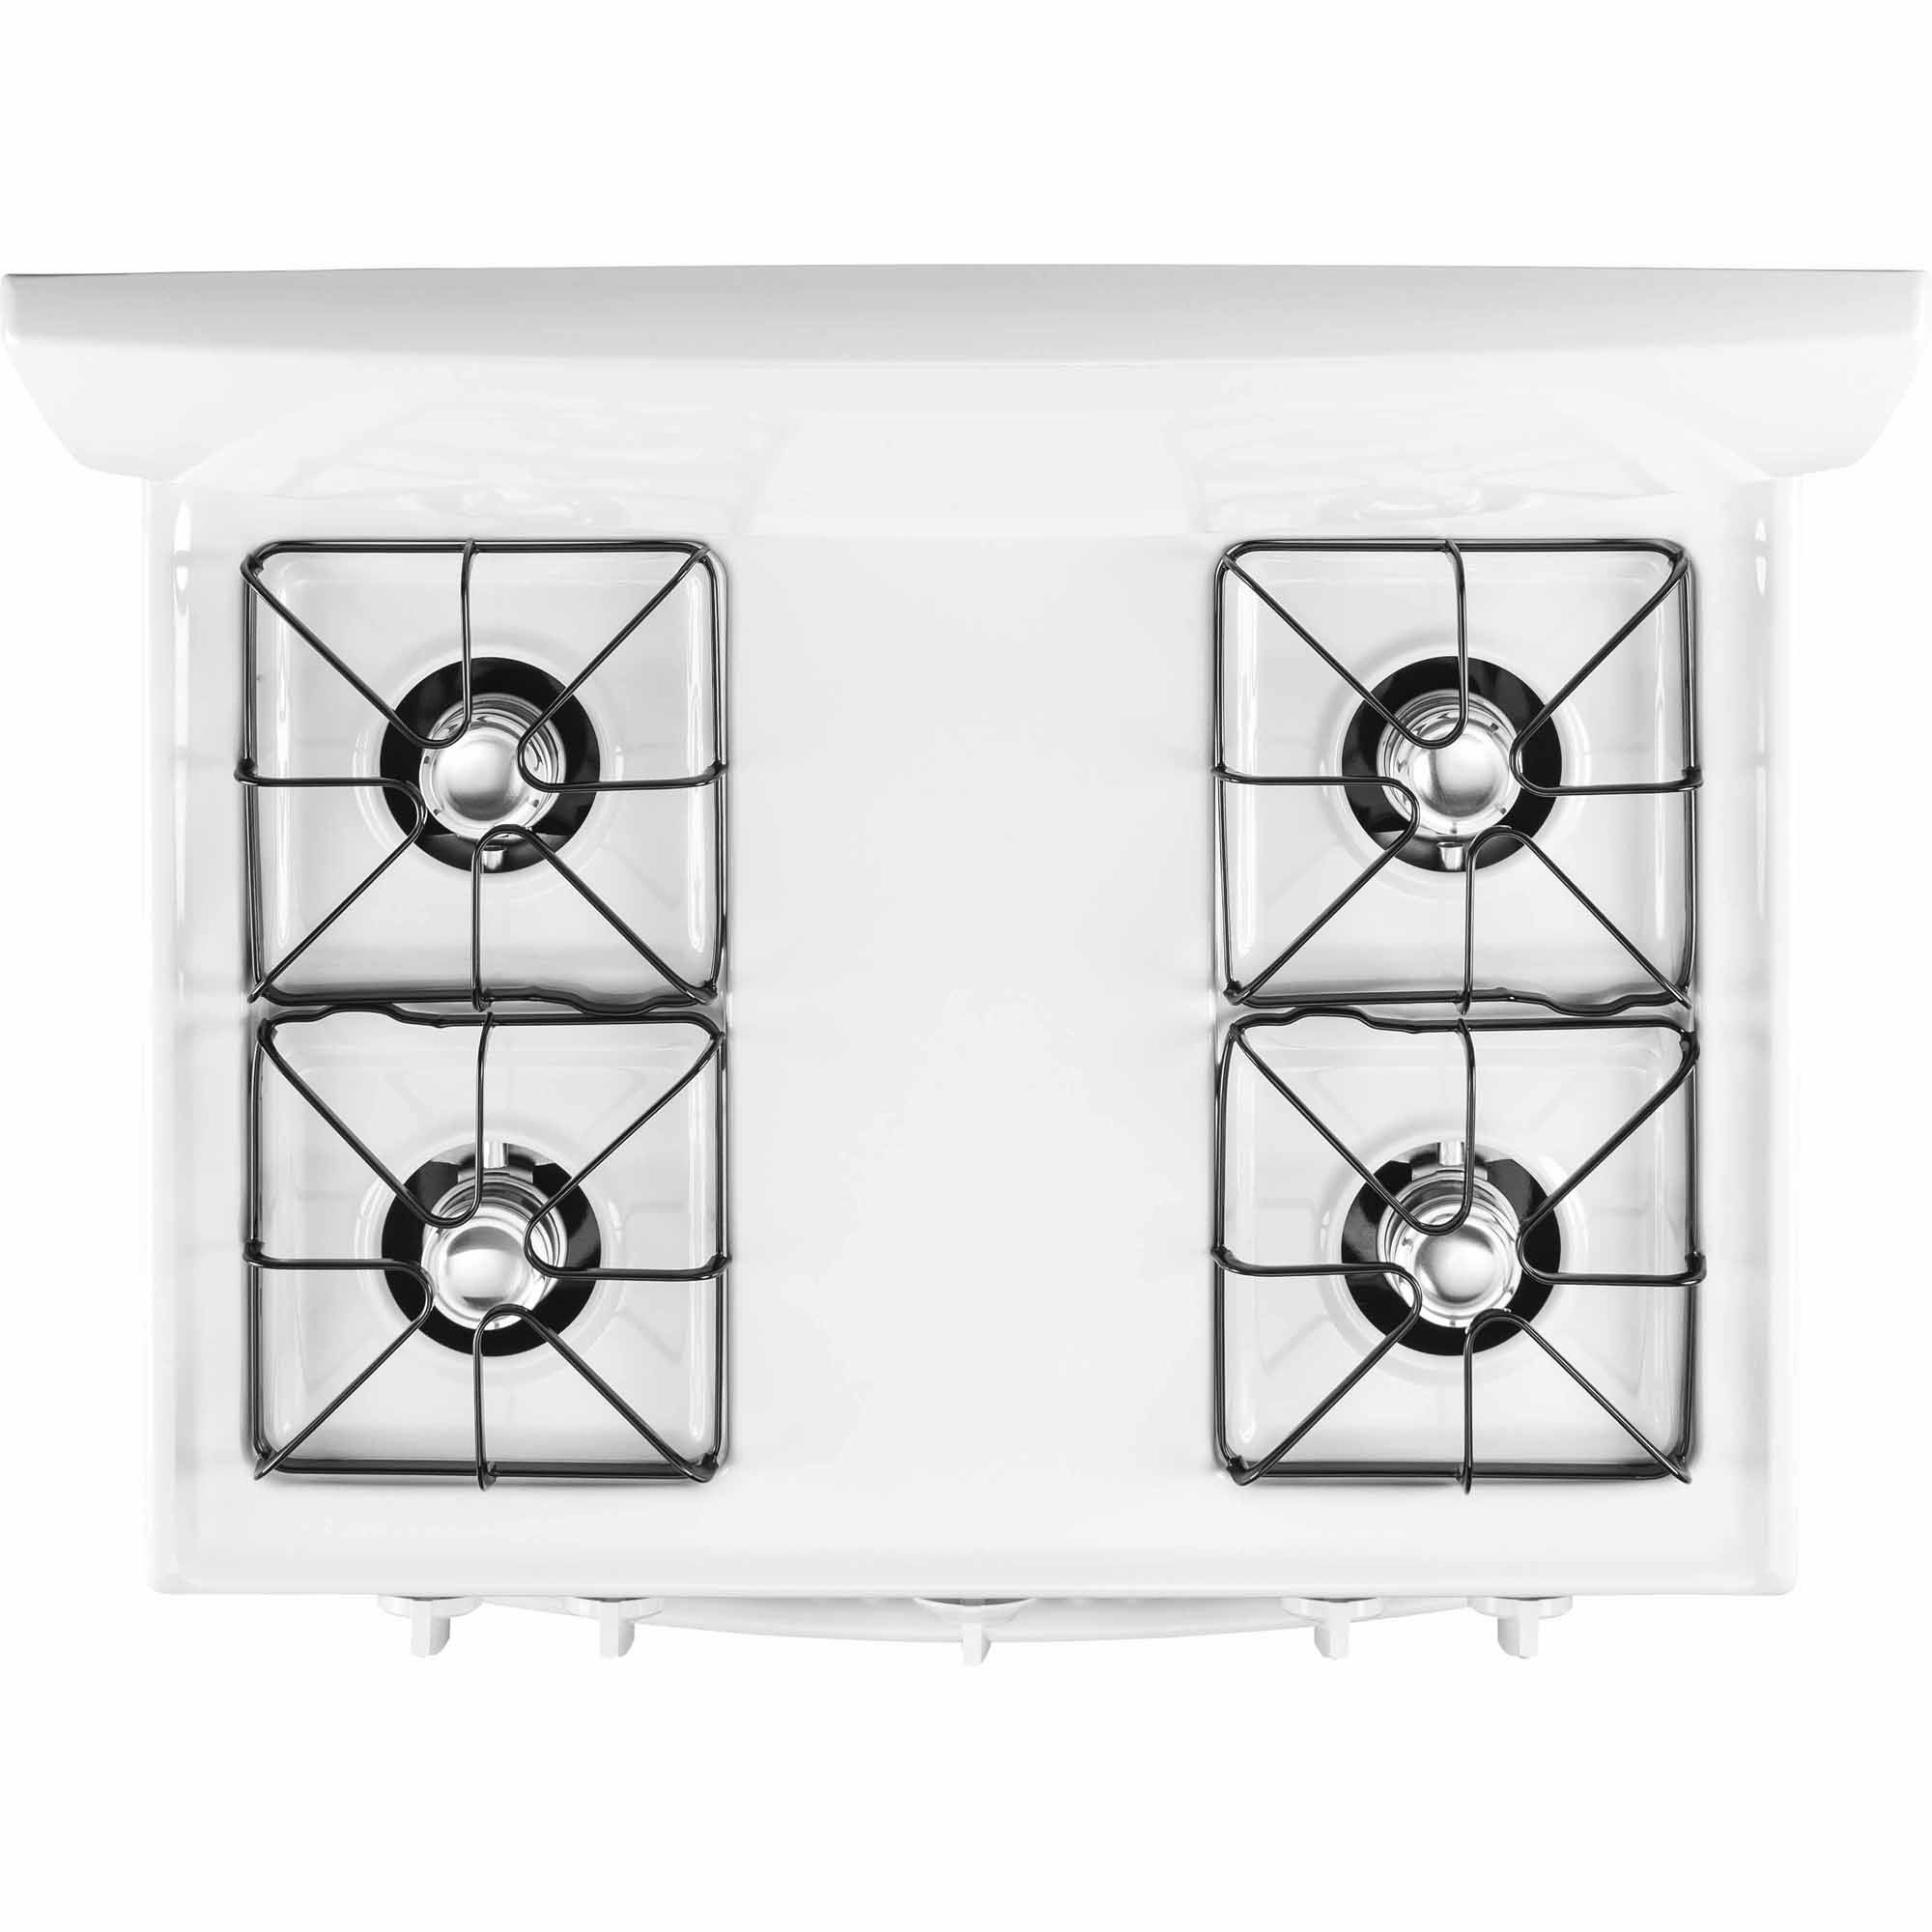 GE Appliances 4.8 cu. ft. Gas Range w/ Cordless Battery Ignition - White